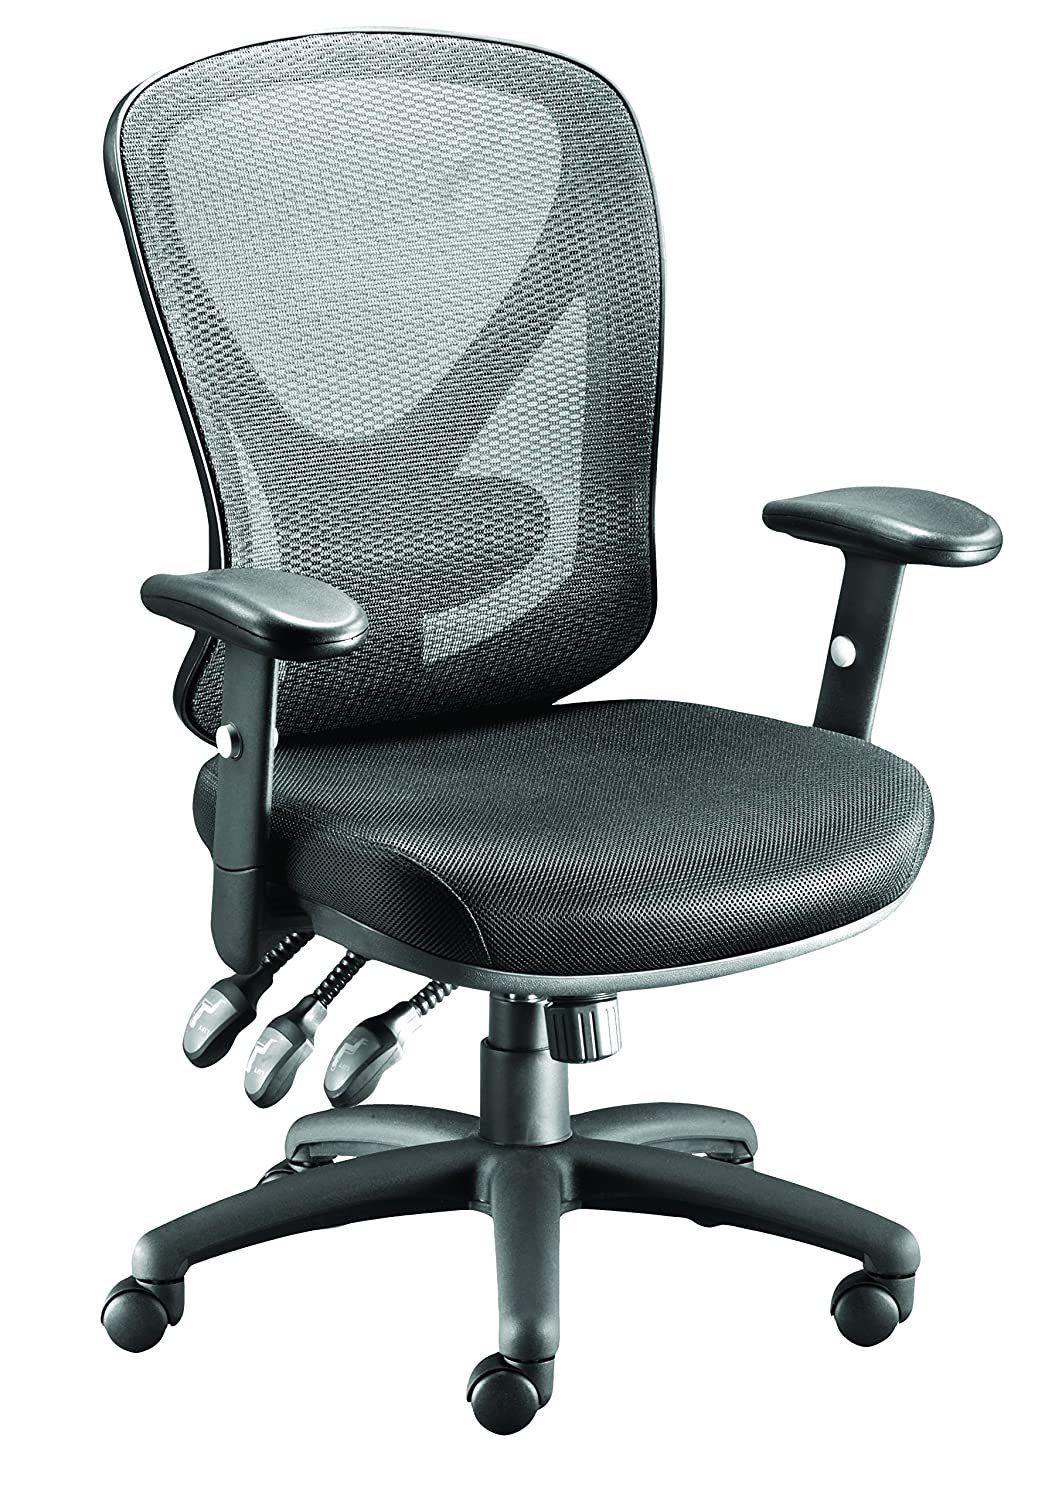 chair scheme size ficmax high desk ergonomic of fice back chairs office gaming vs amazon